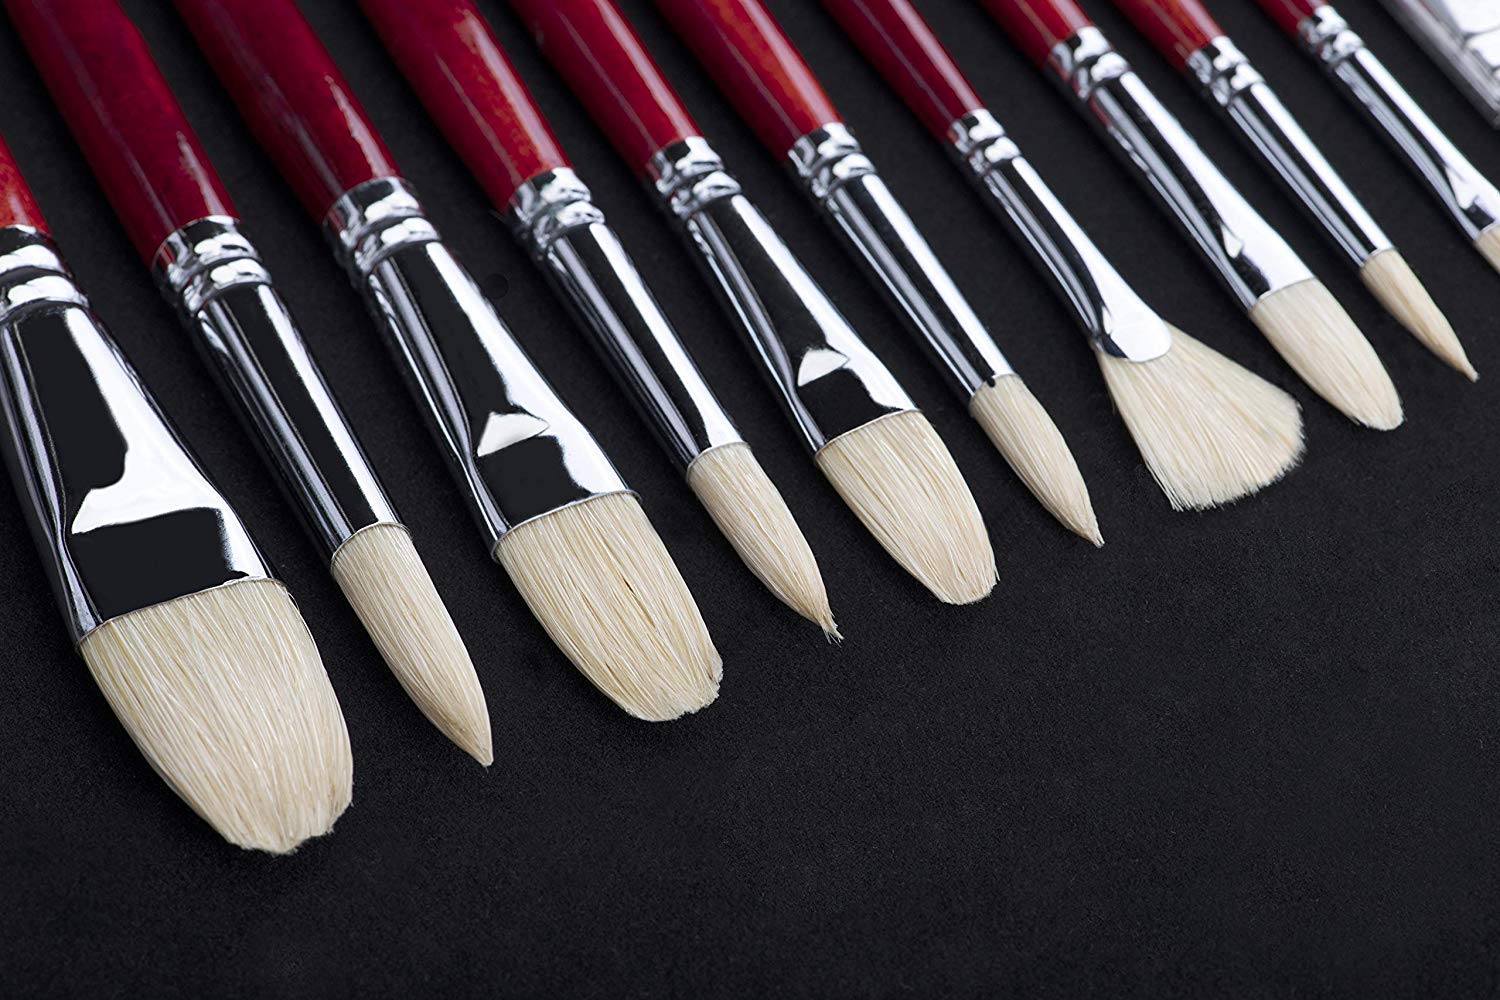 11 pcs Professional Oil /& Acrylics Artist Brushes Pure Hog Bristles Lacquered Birchwood Long Handles with a Free